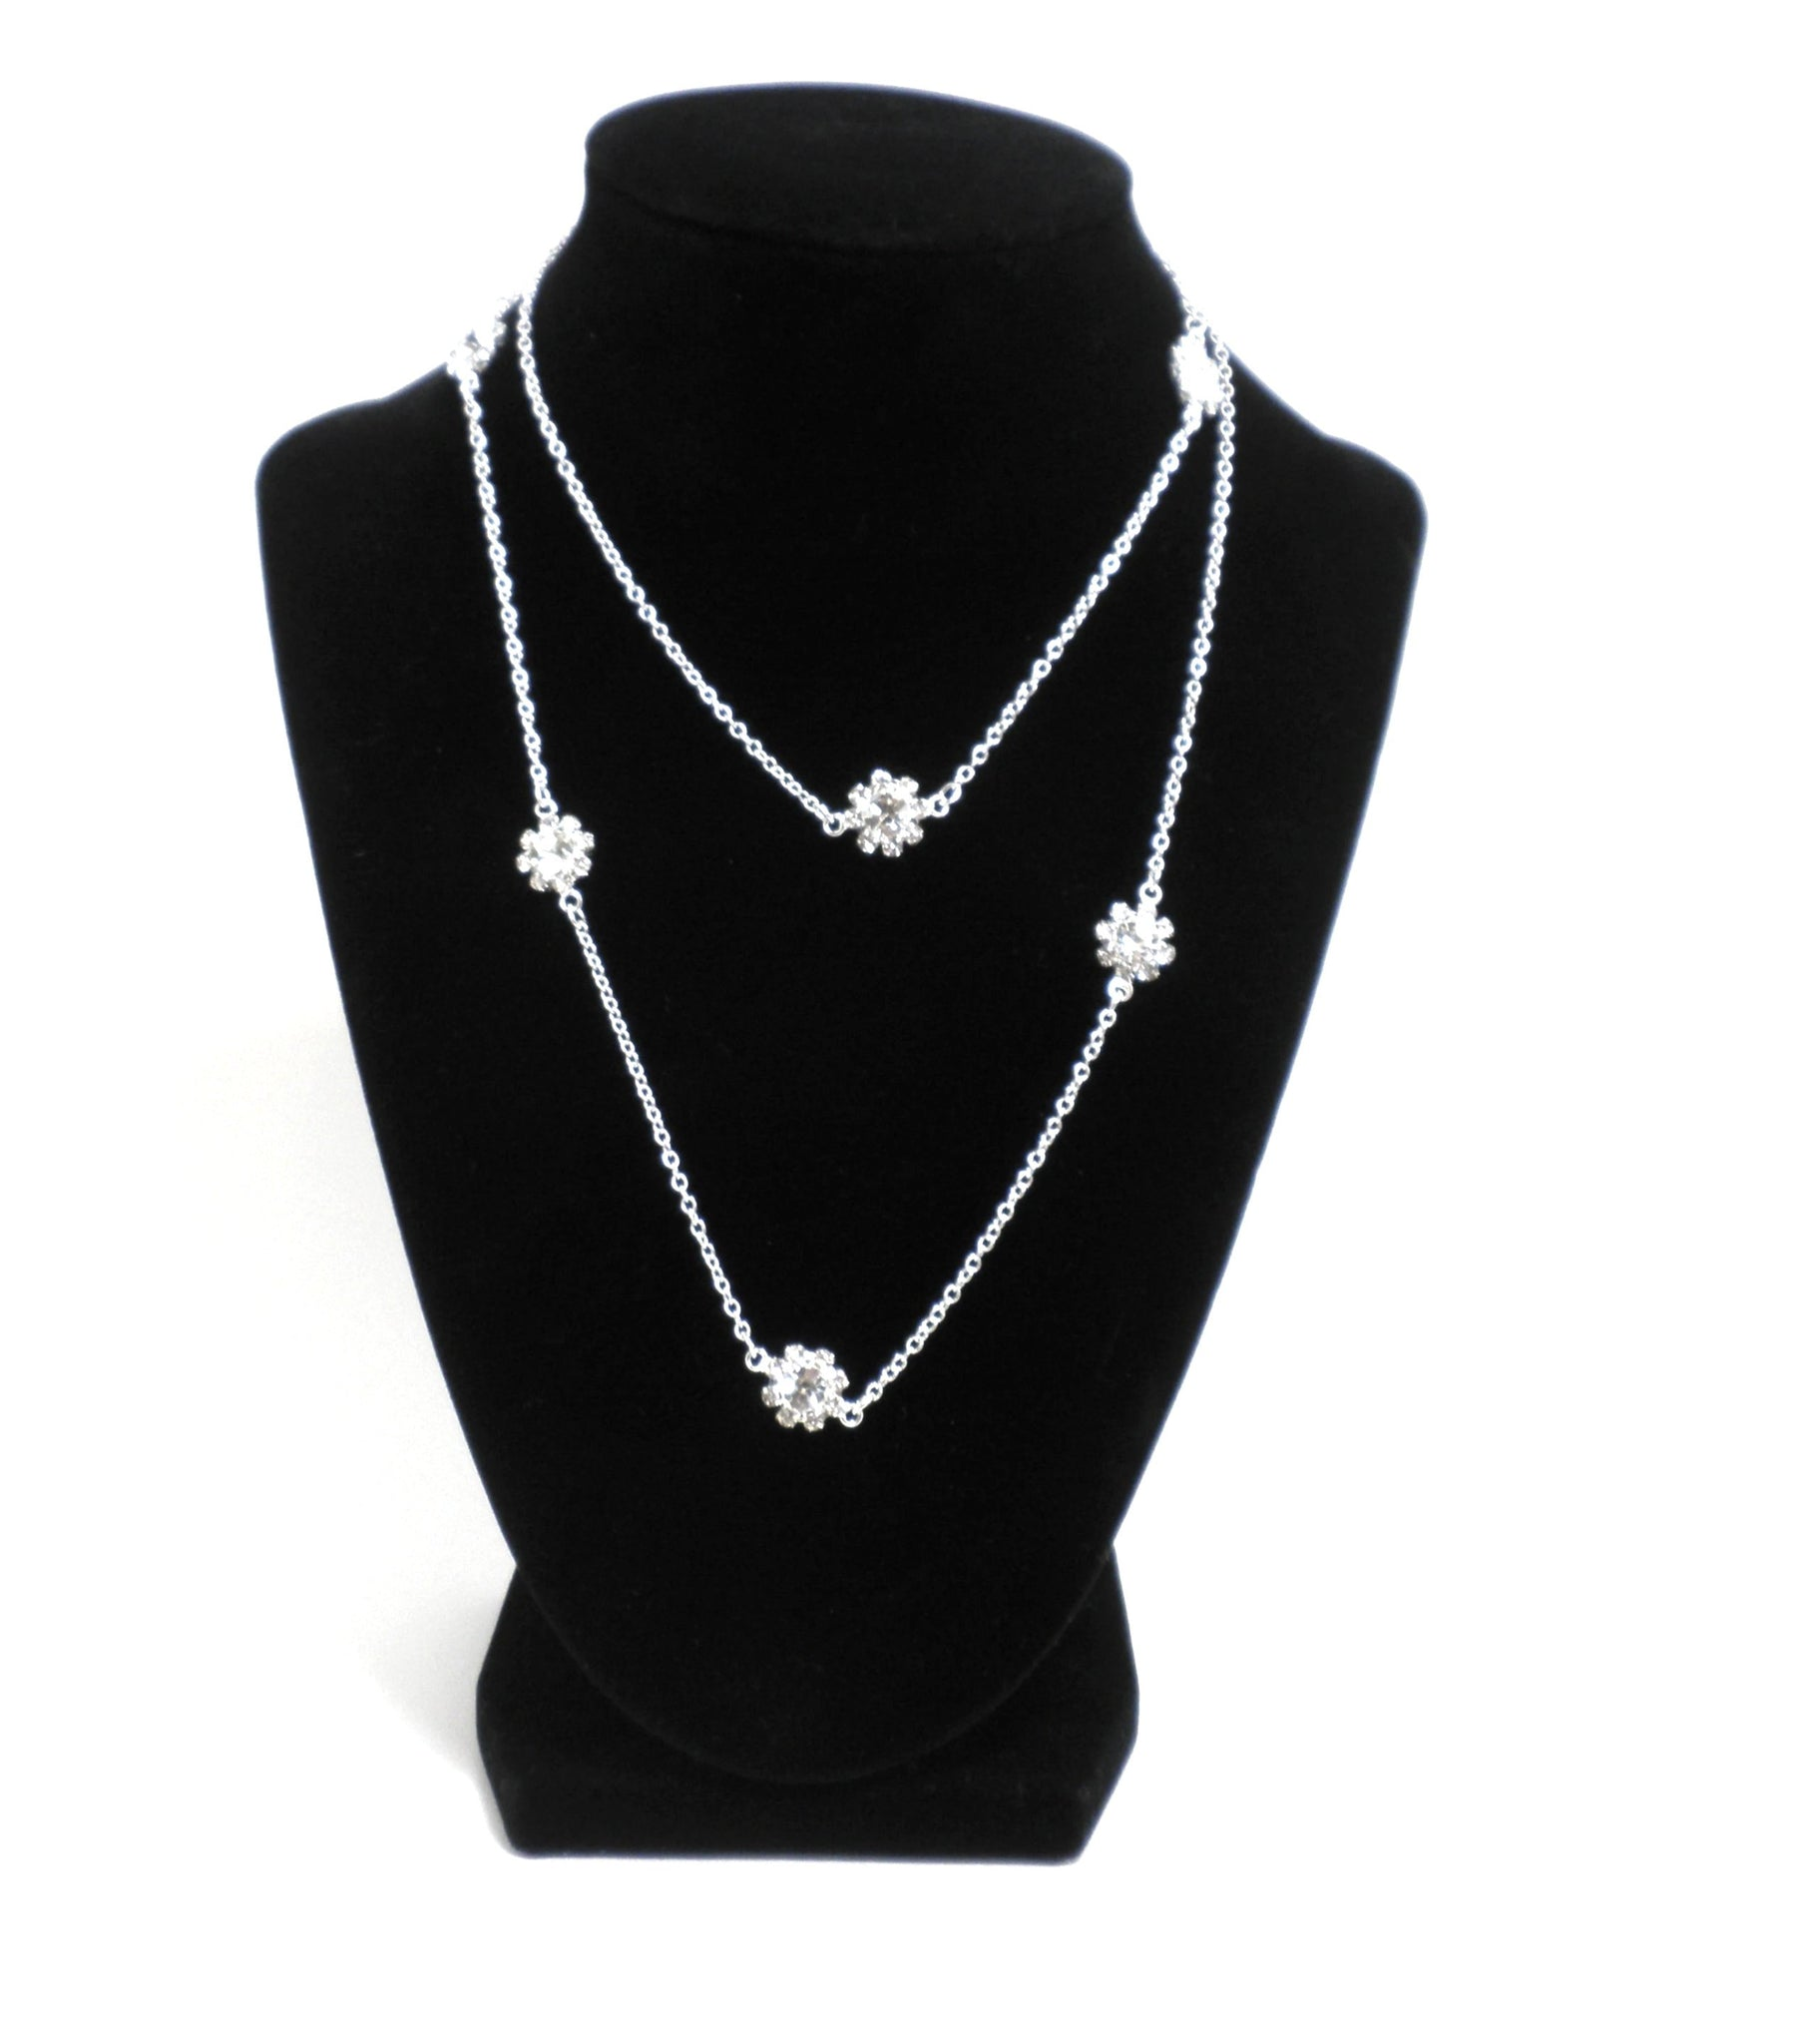 Silver Floral Rhinestone Necklace - The Fashion Foundation